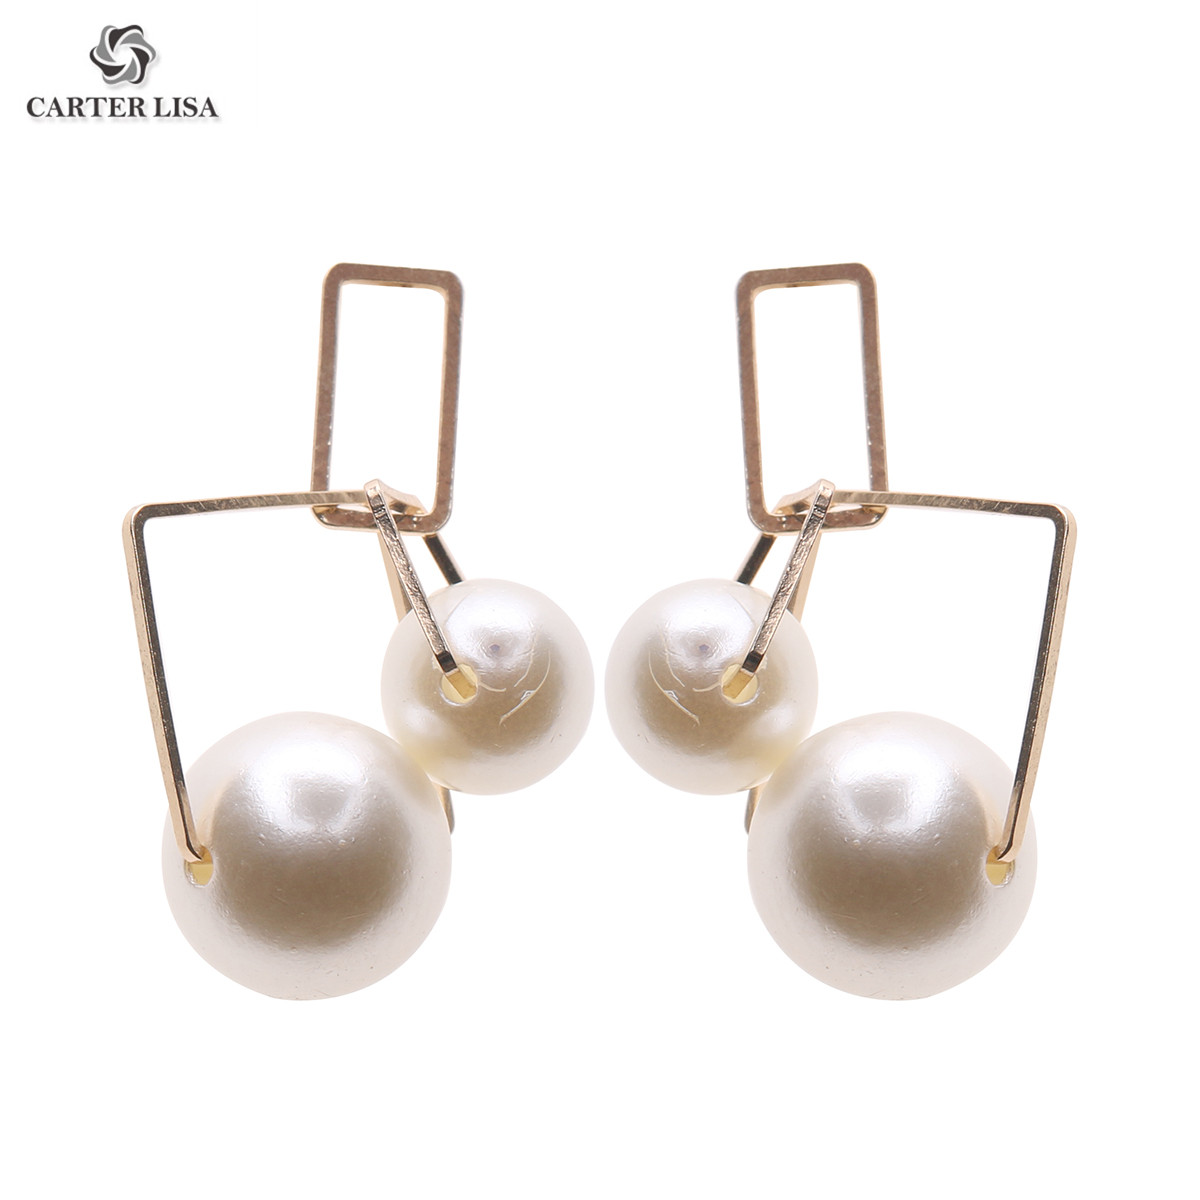 CARTER LISA 2019 New Hot Selling Fashion Simulated Pearl Geometric Earrings Pearls Statement Drop Dangle Earrings HDEA-094